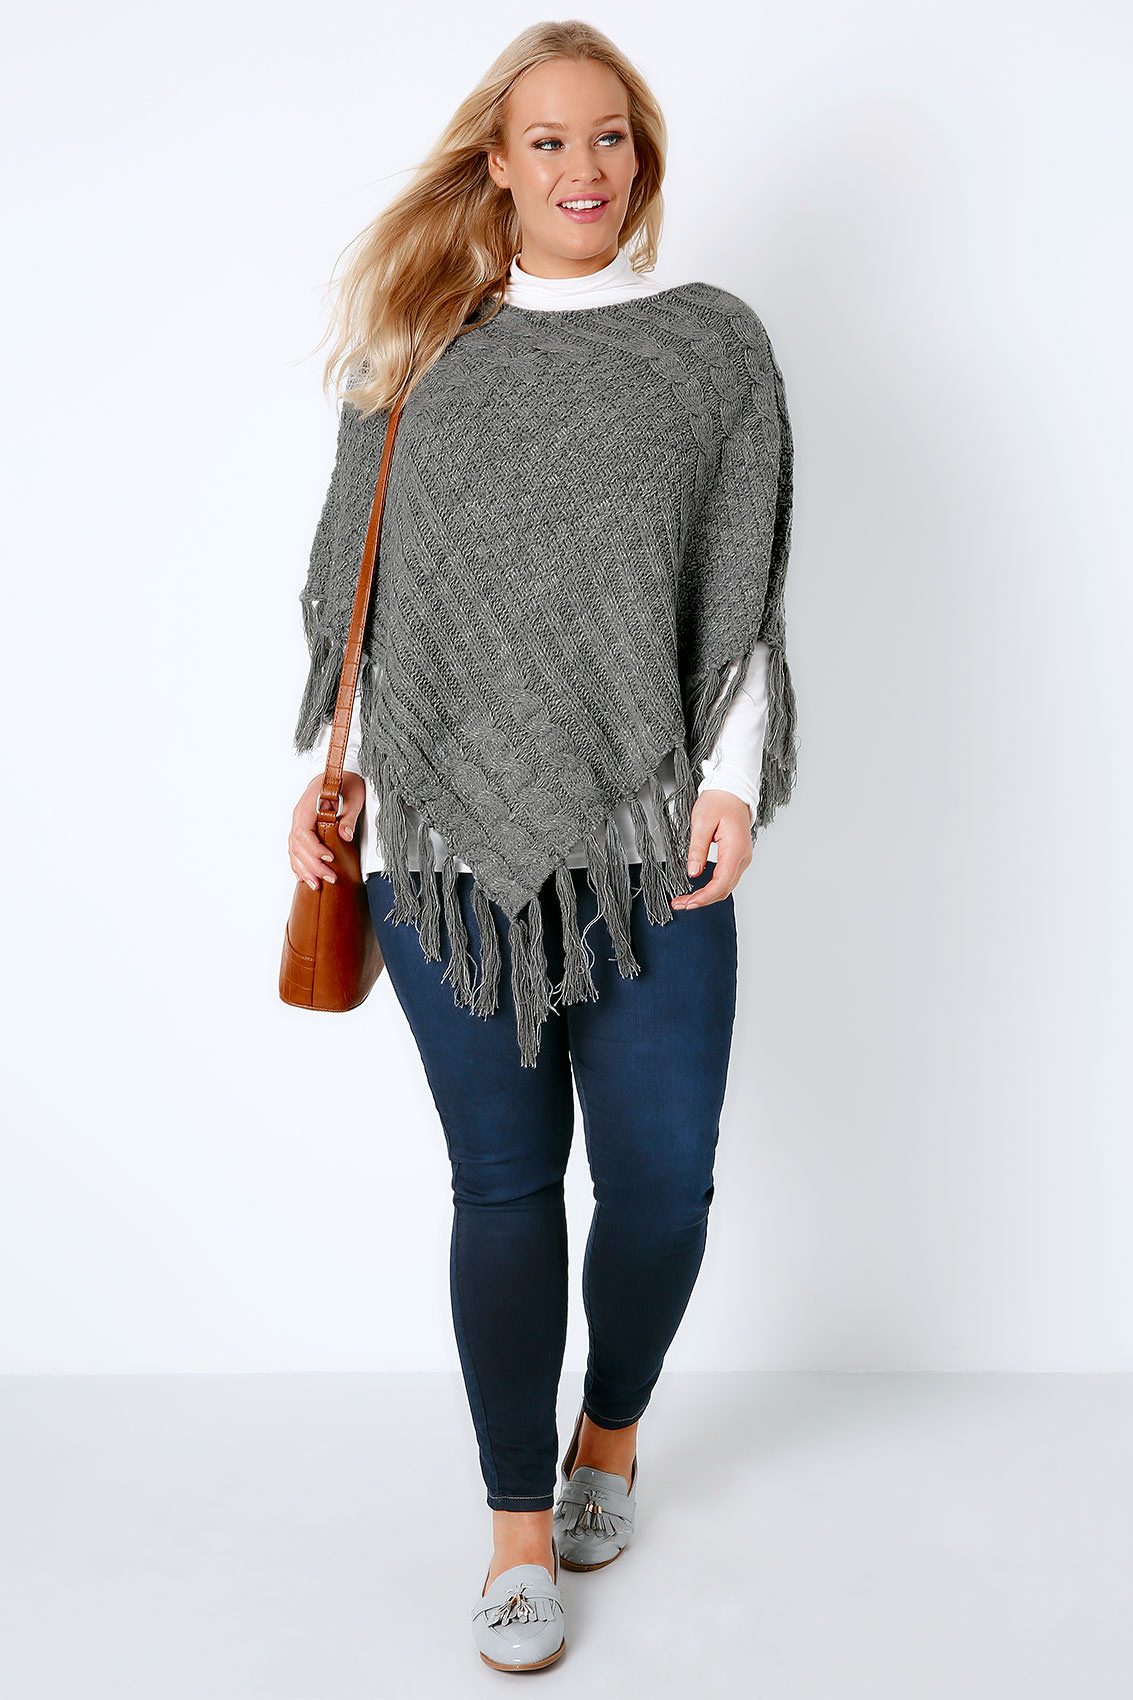 Knitted Poncho Best Of Grey Cable Knitted Poncho with Tassels Plus Size 16 to 32 Of Amazing 49 Photos Knitted Poncho